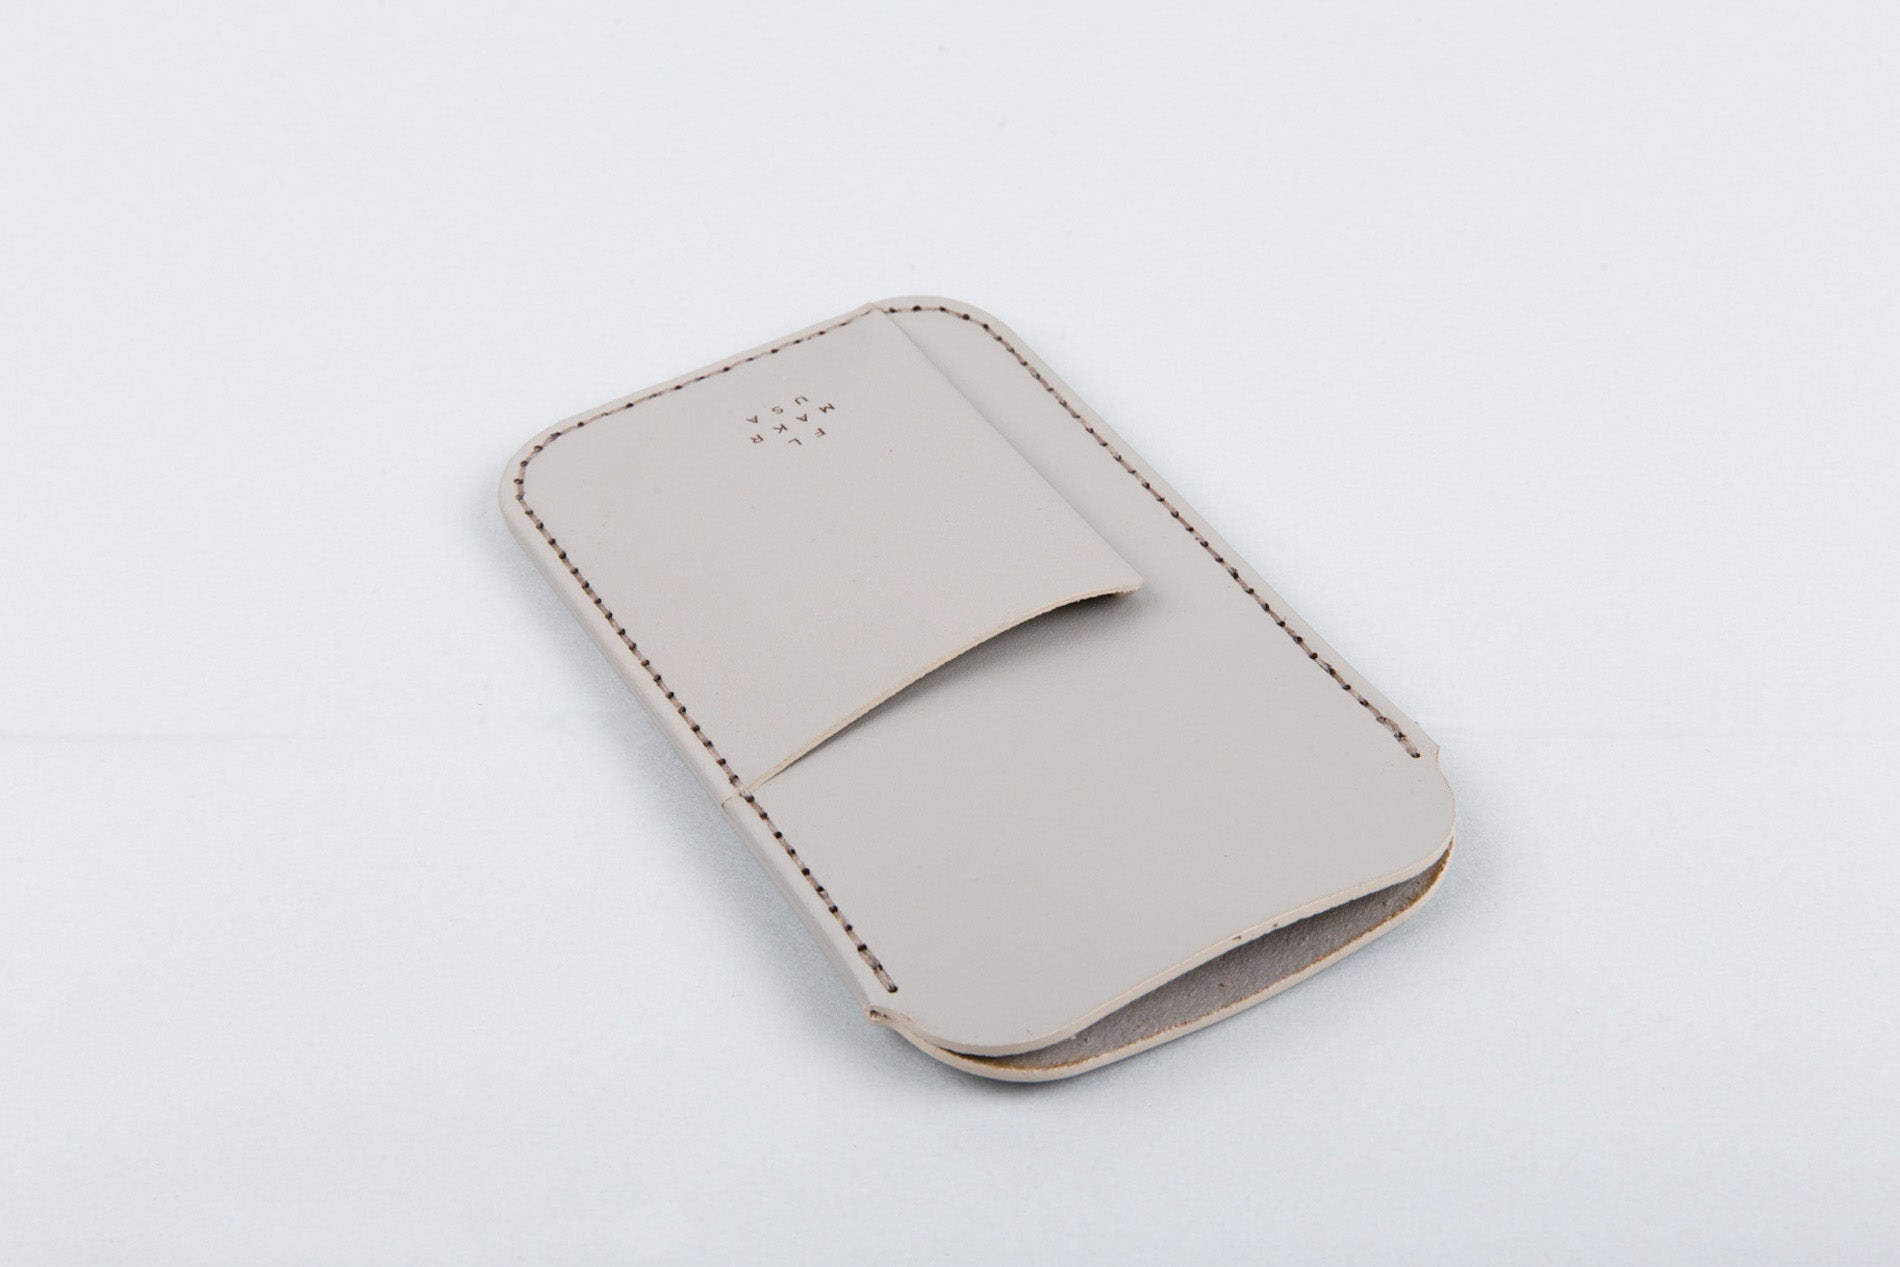 MAKR iPhone 7 Plus / Card Sleeve - Grey